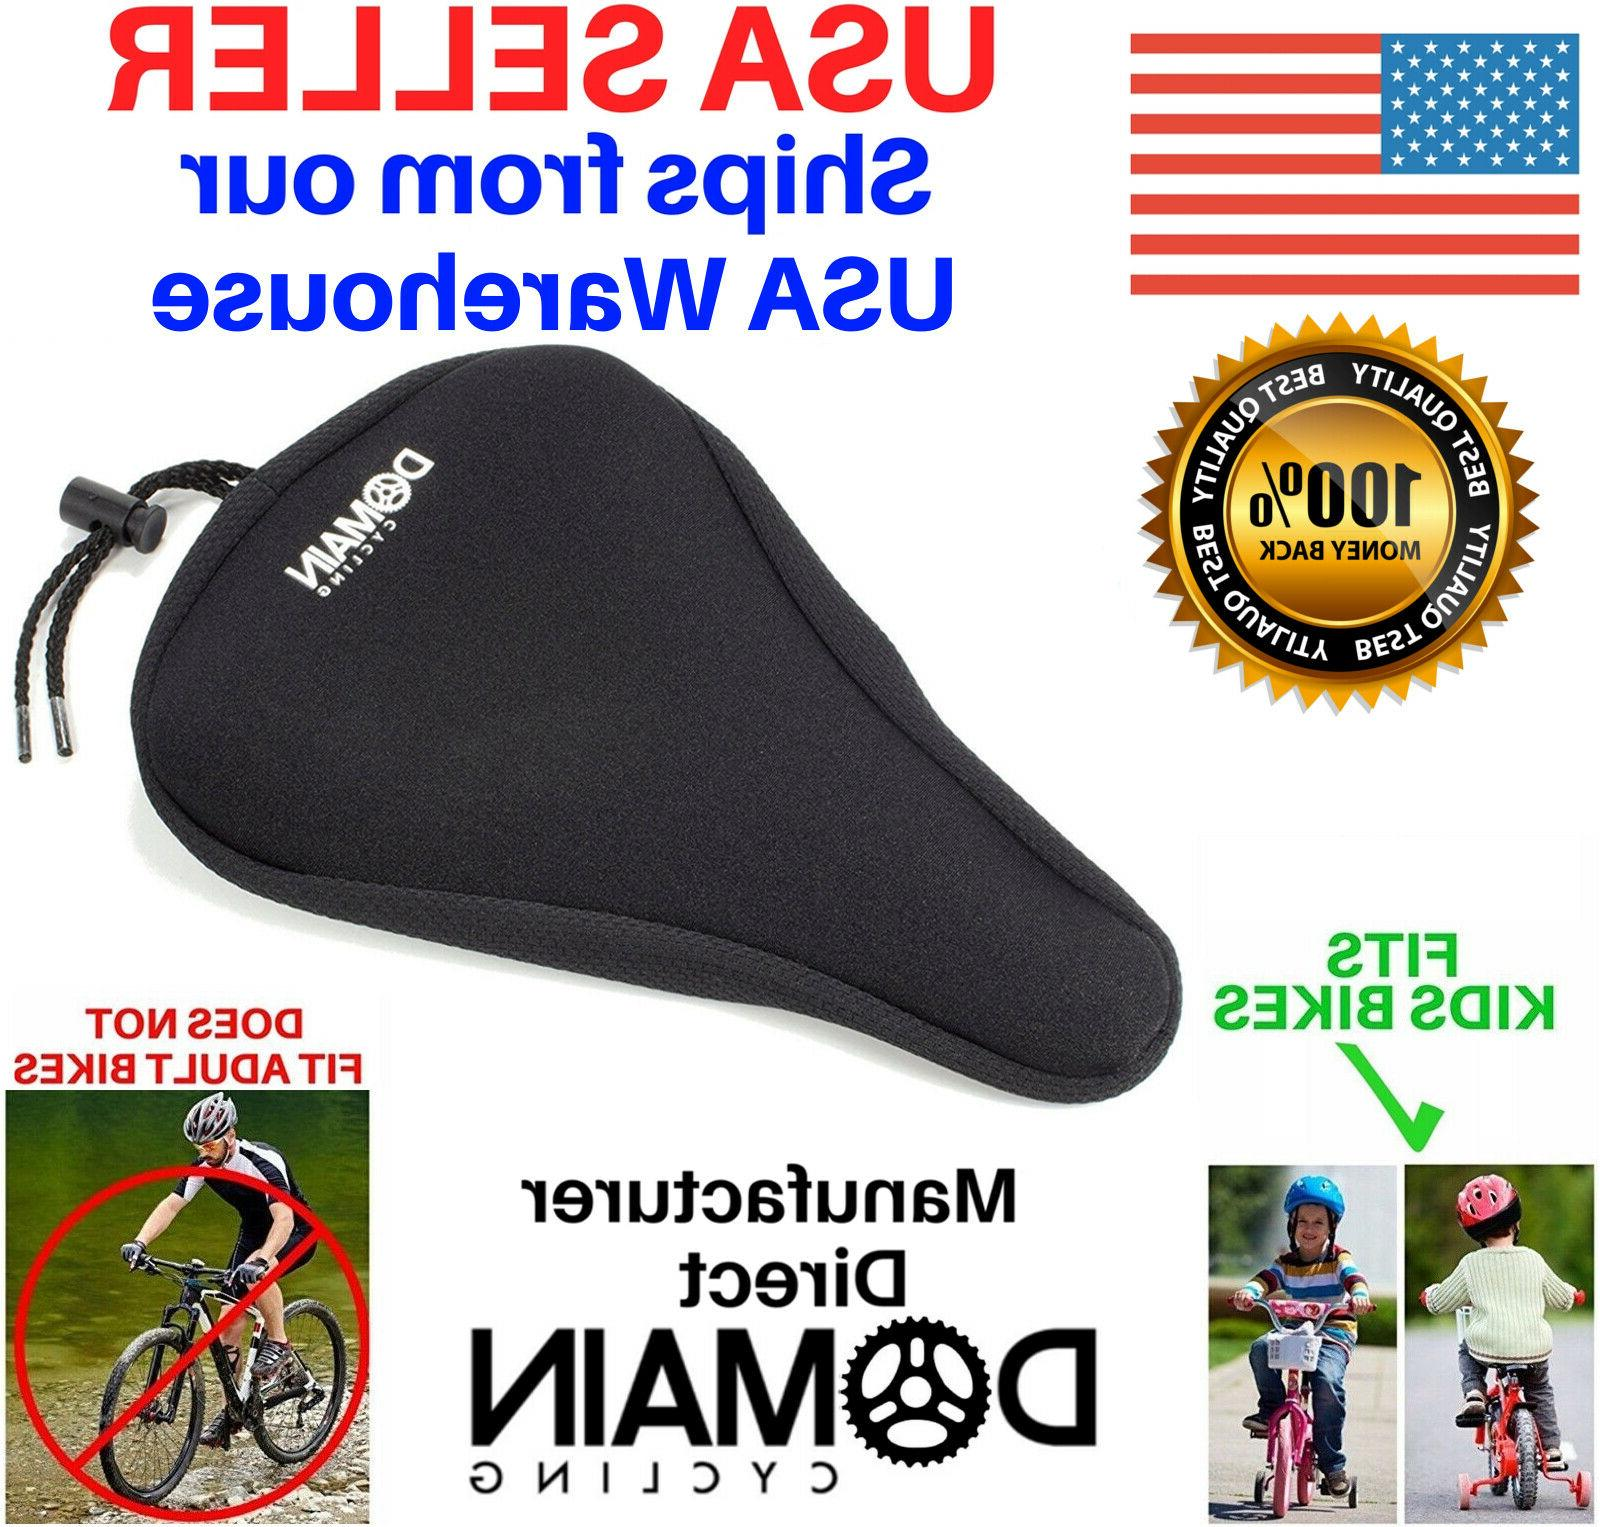 Premium Seat Cover x - Domain Cycling